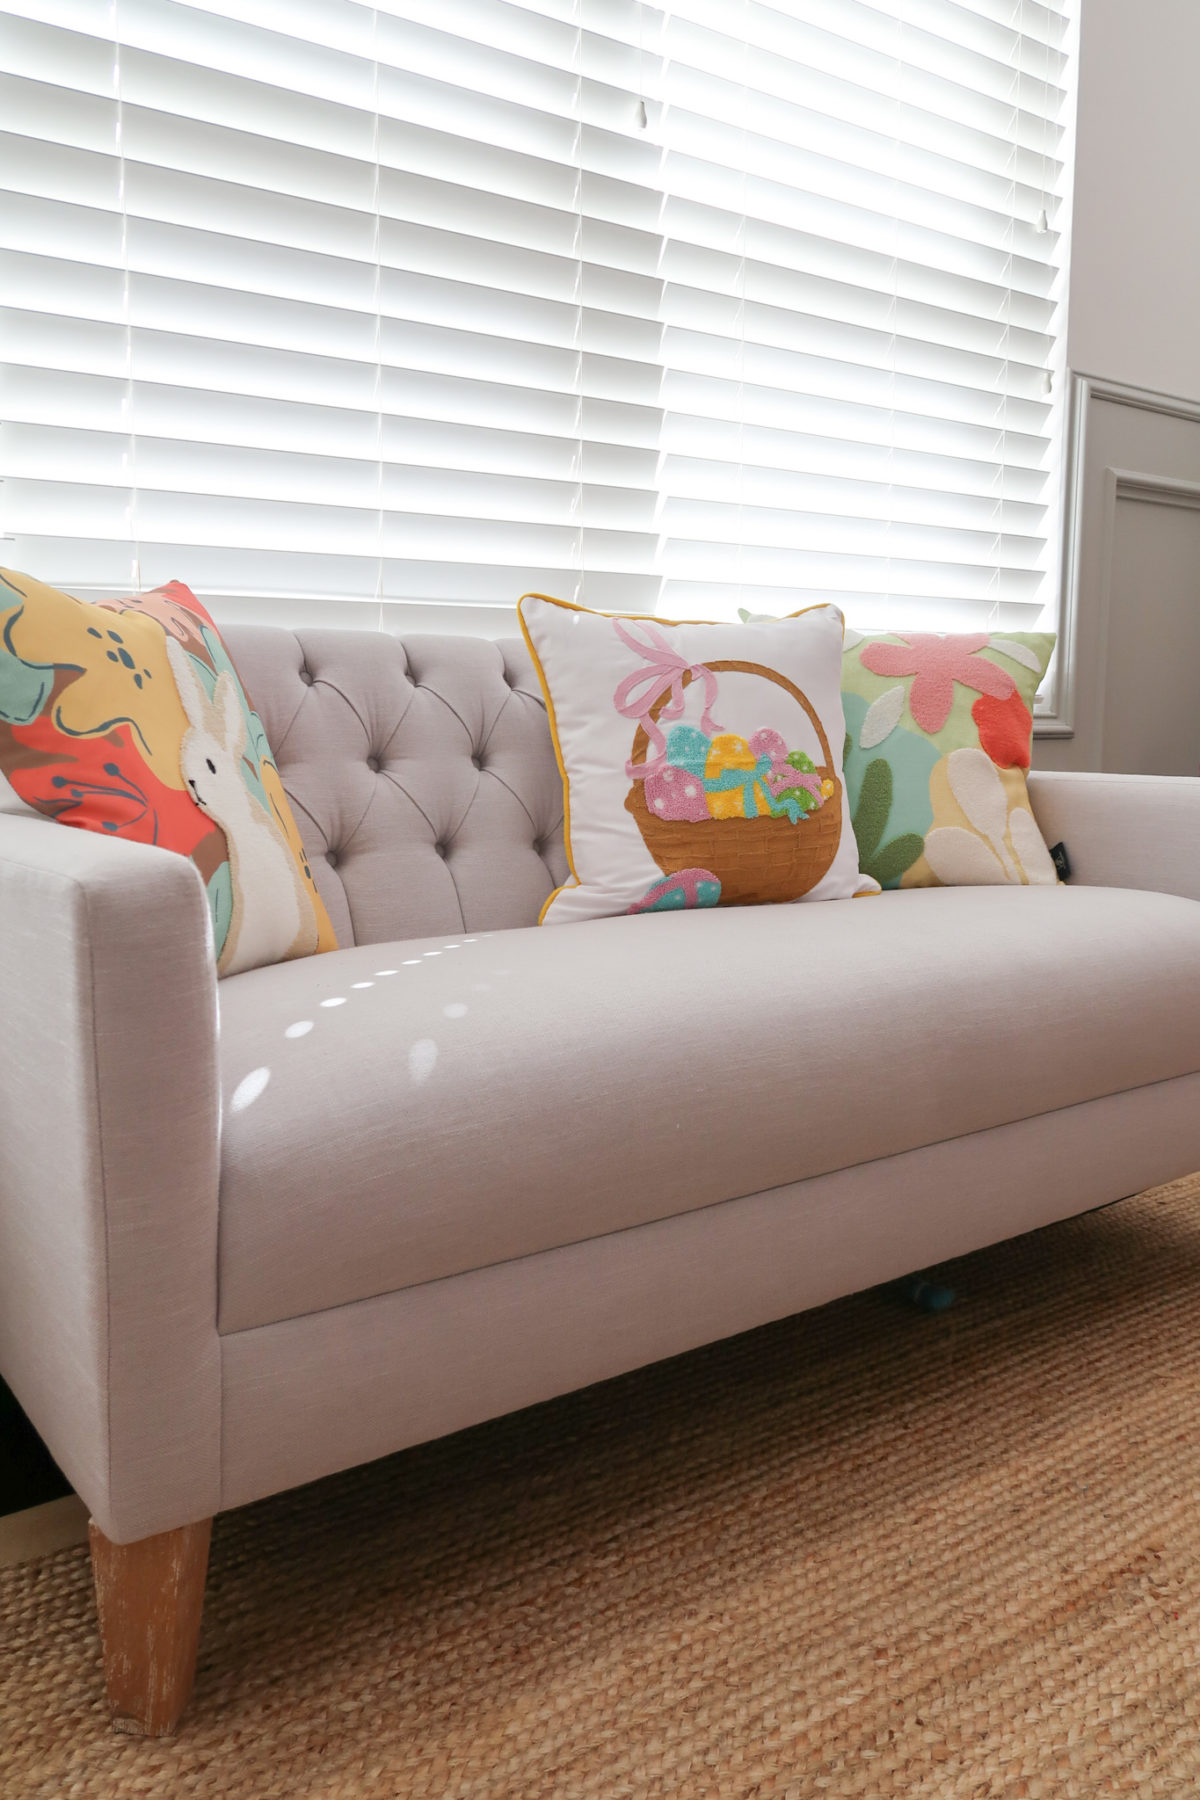 Spring Decor, Playroom Sofa, Easter Pillows